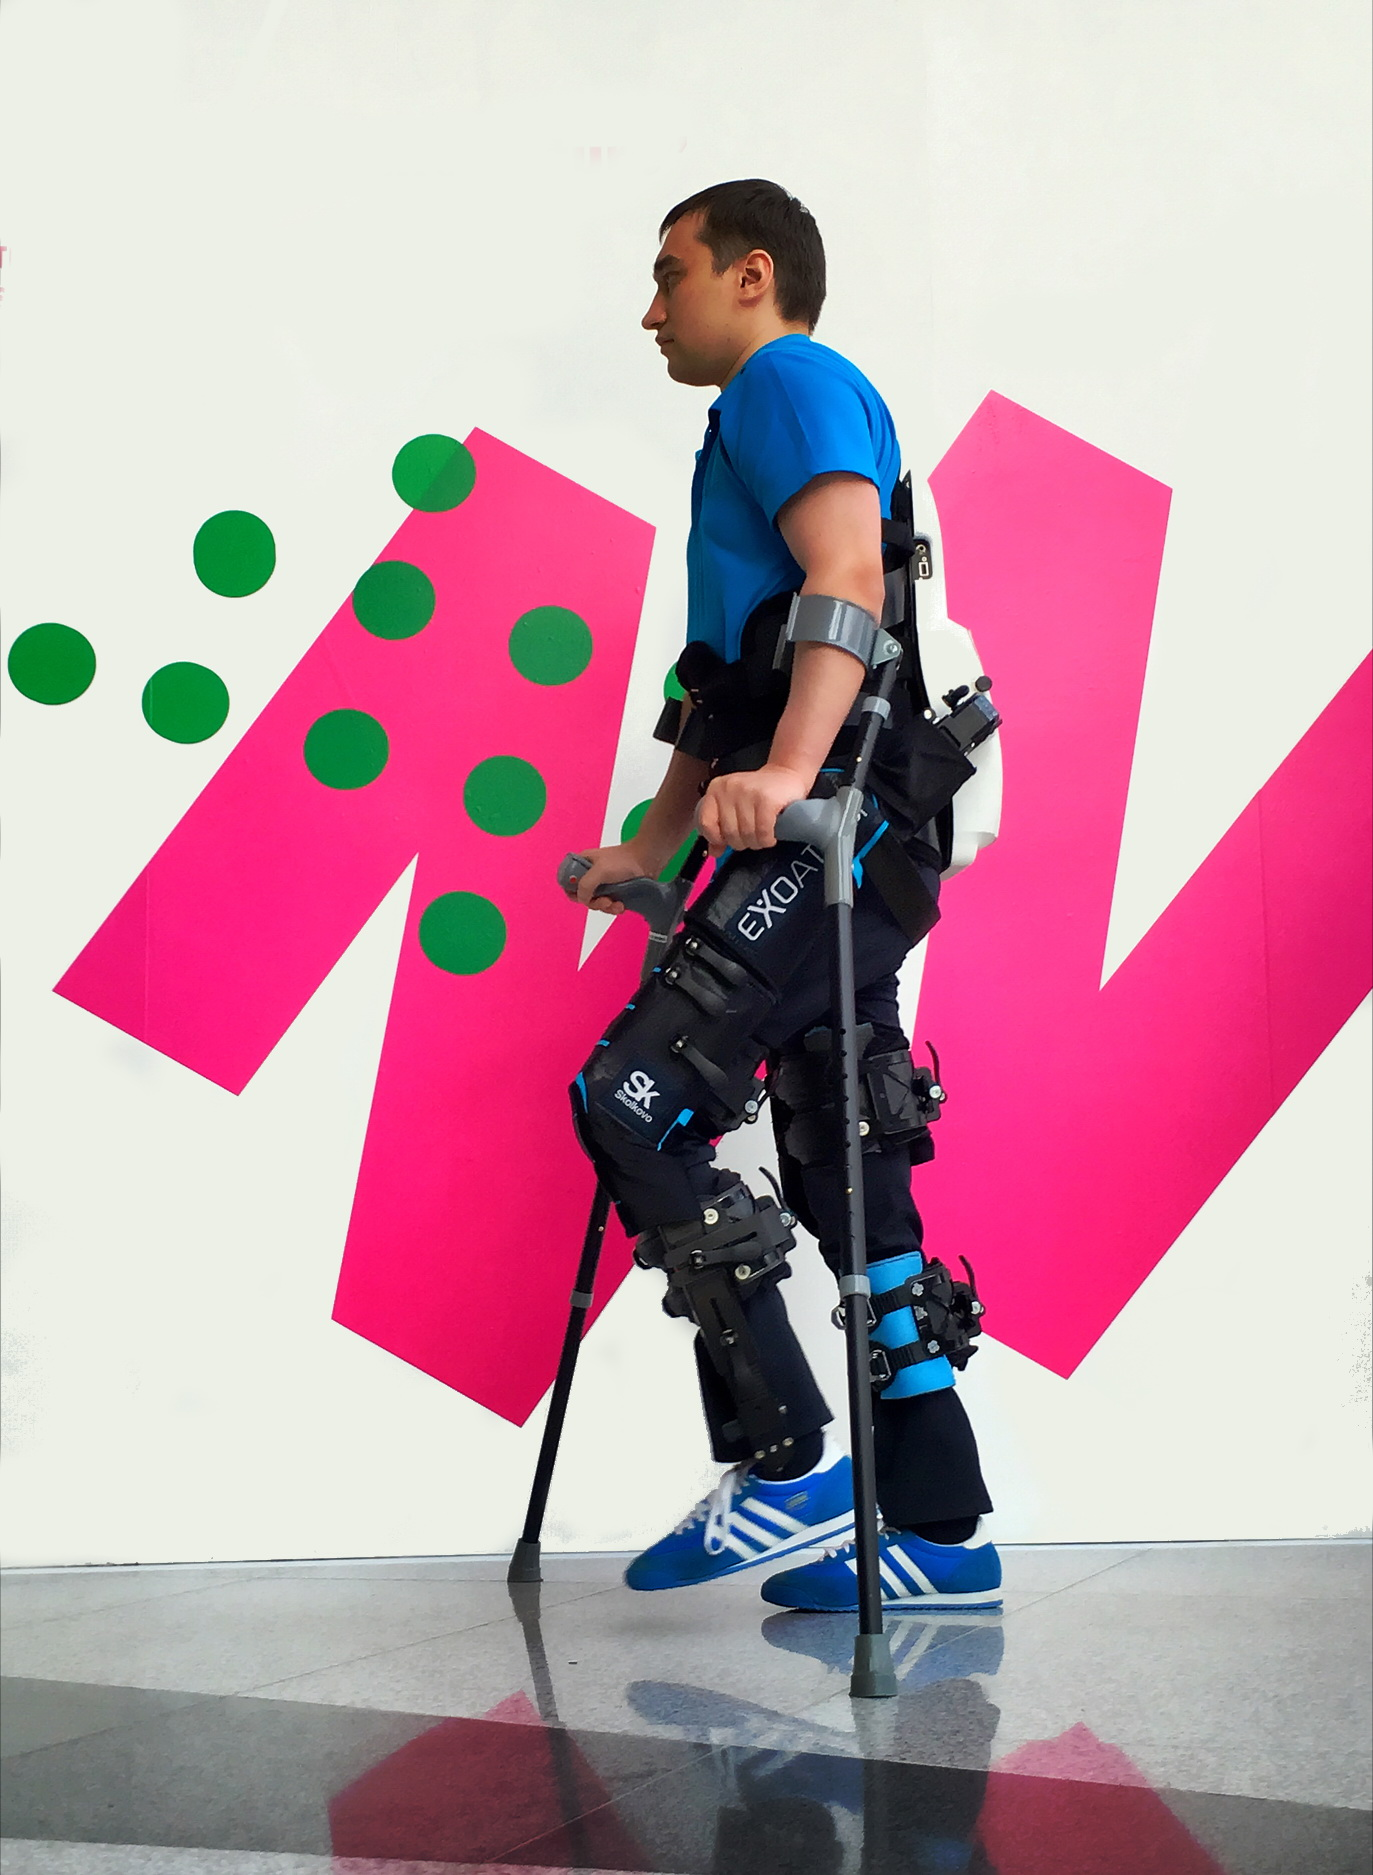 Figure 3. The ExoAtlet. This is an electrically actuated exoskeleton that assists patients suffering from leg paralysis. The ExoAtlet allows to set the stepping parameters and enacts several bipedal states, such as standing, walking on different surfaces and stepping over obstacles. Reproduced with permission from Ekaterina Bereziy, exoatlet.ru.